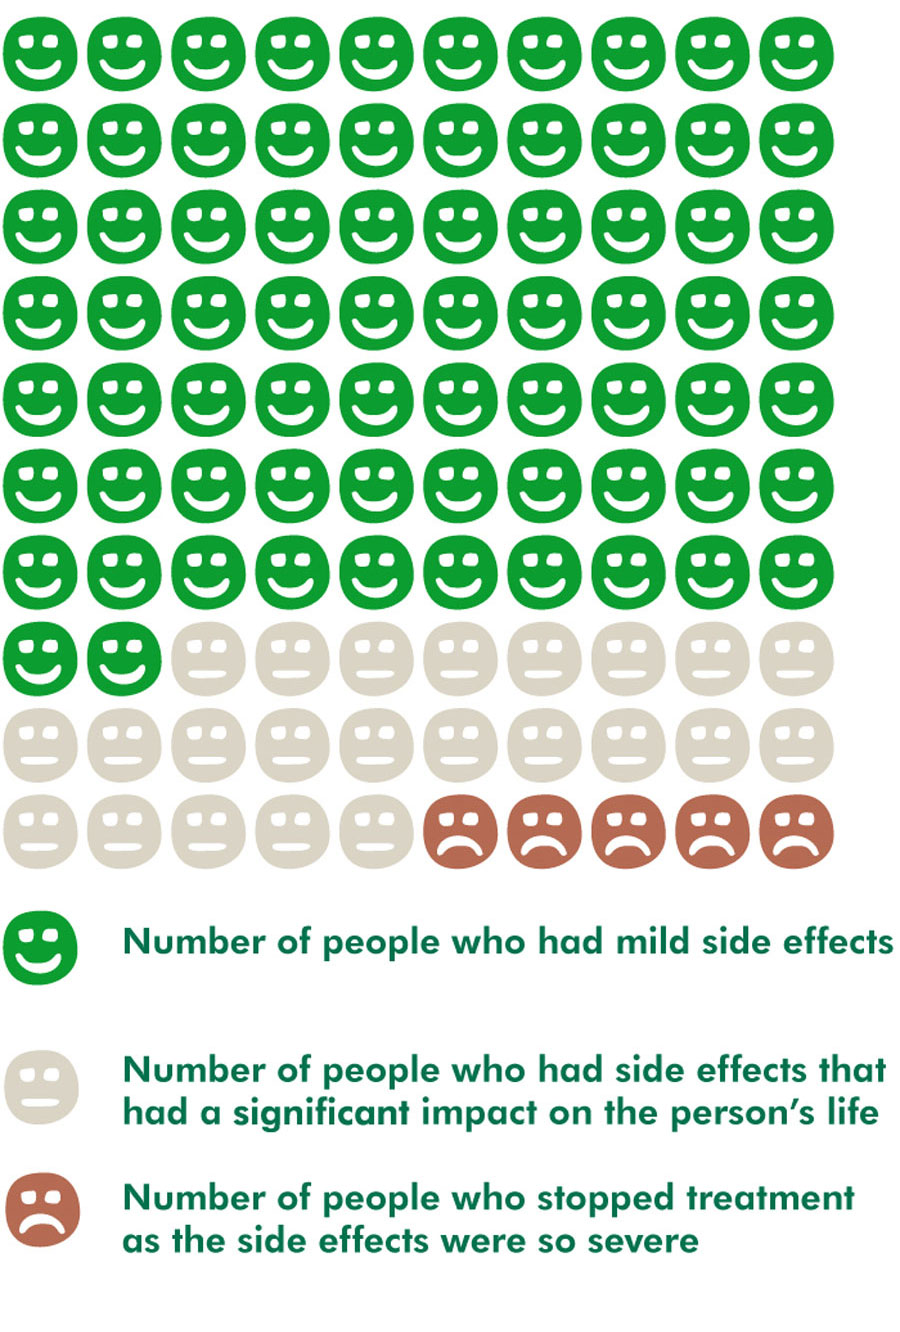 'Smiley face' diagram showing how people's lives were affected by the side effects